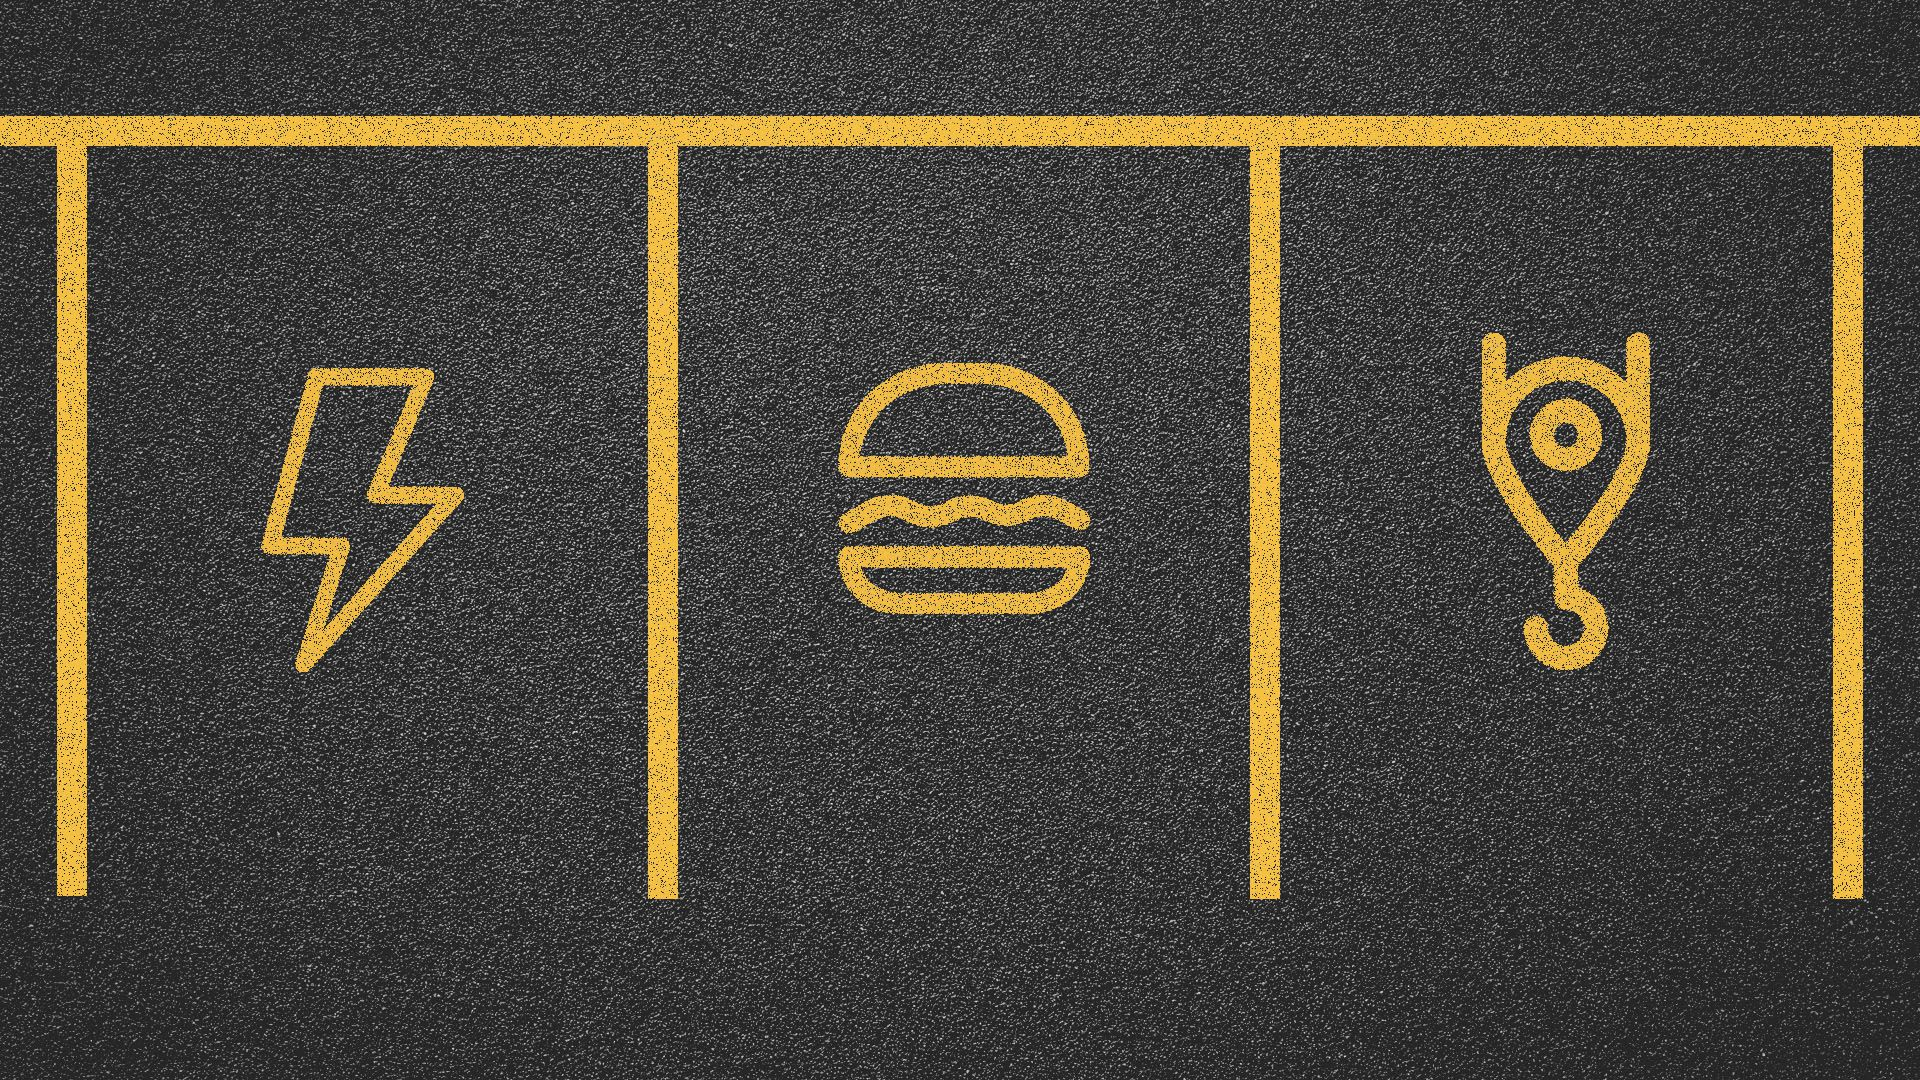 Illustration of parking spaces with food, electricity, and building symbols on the ground